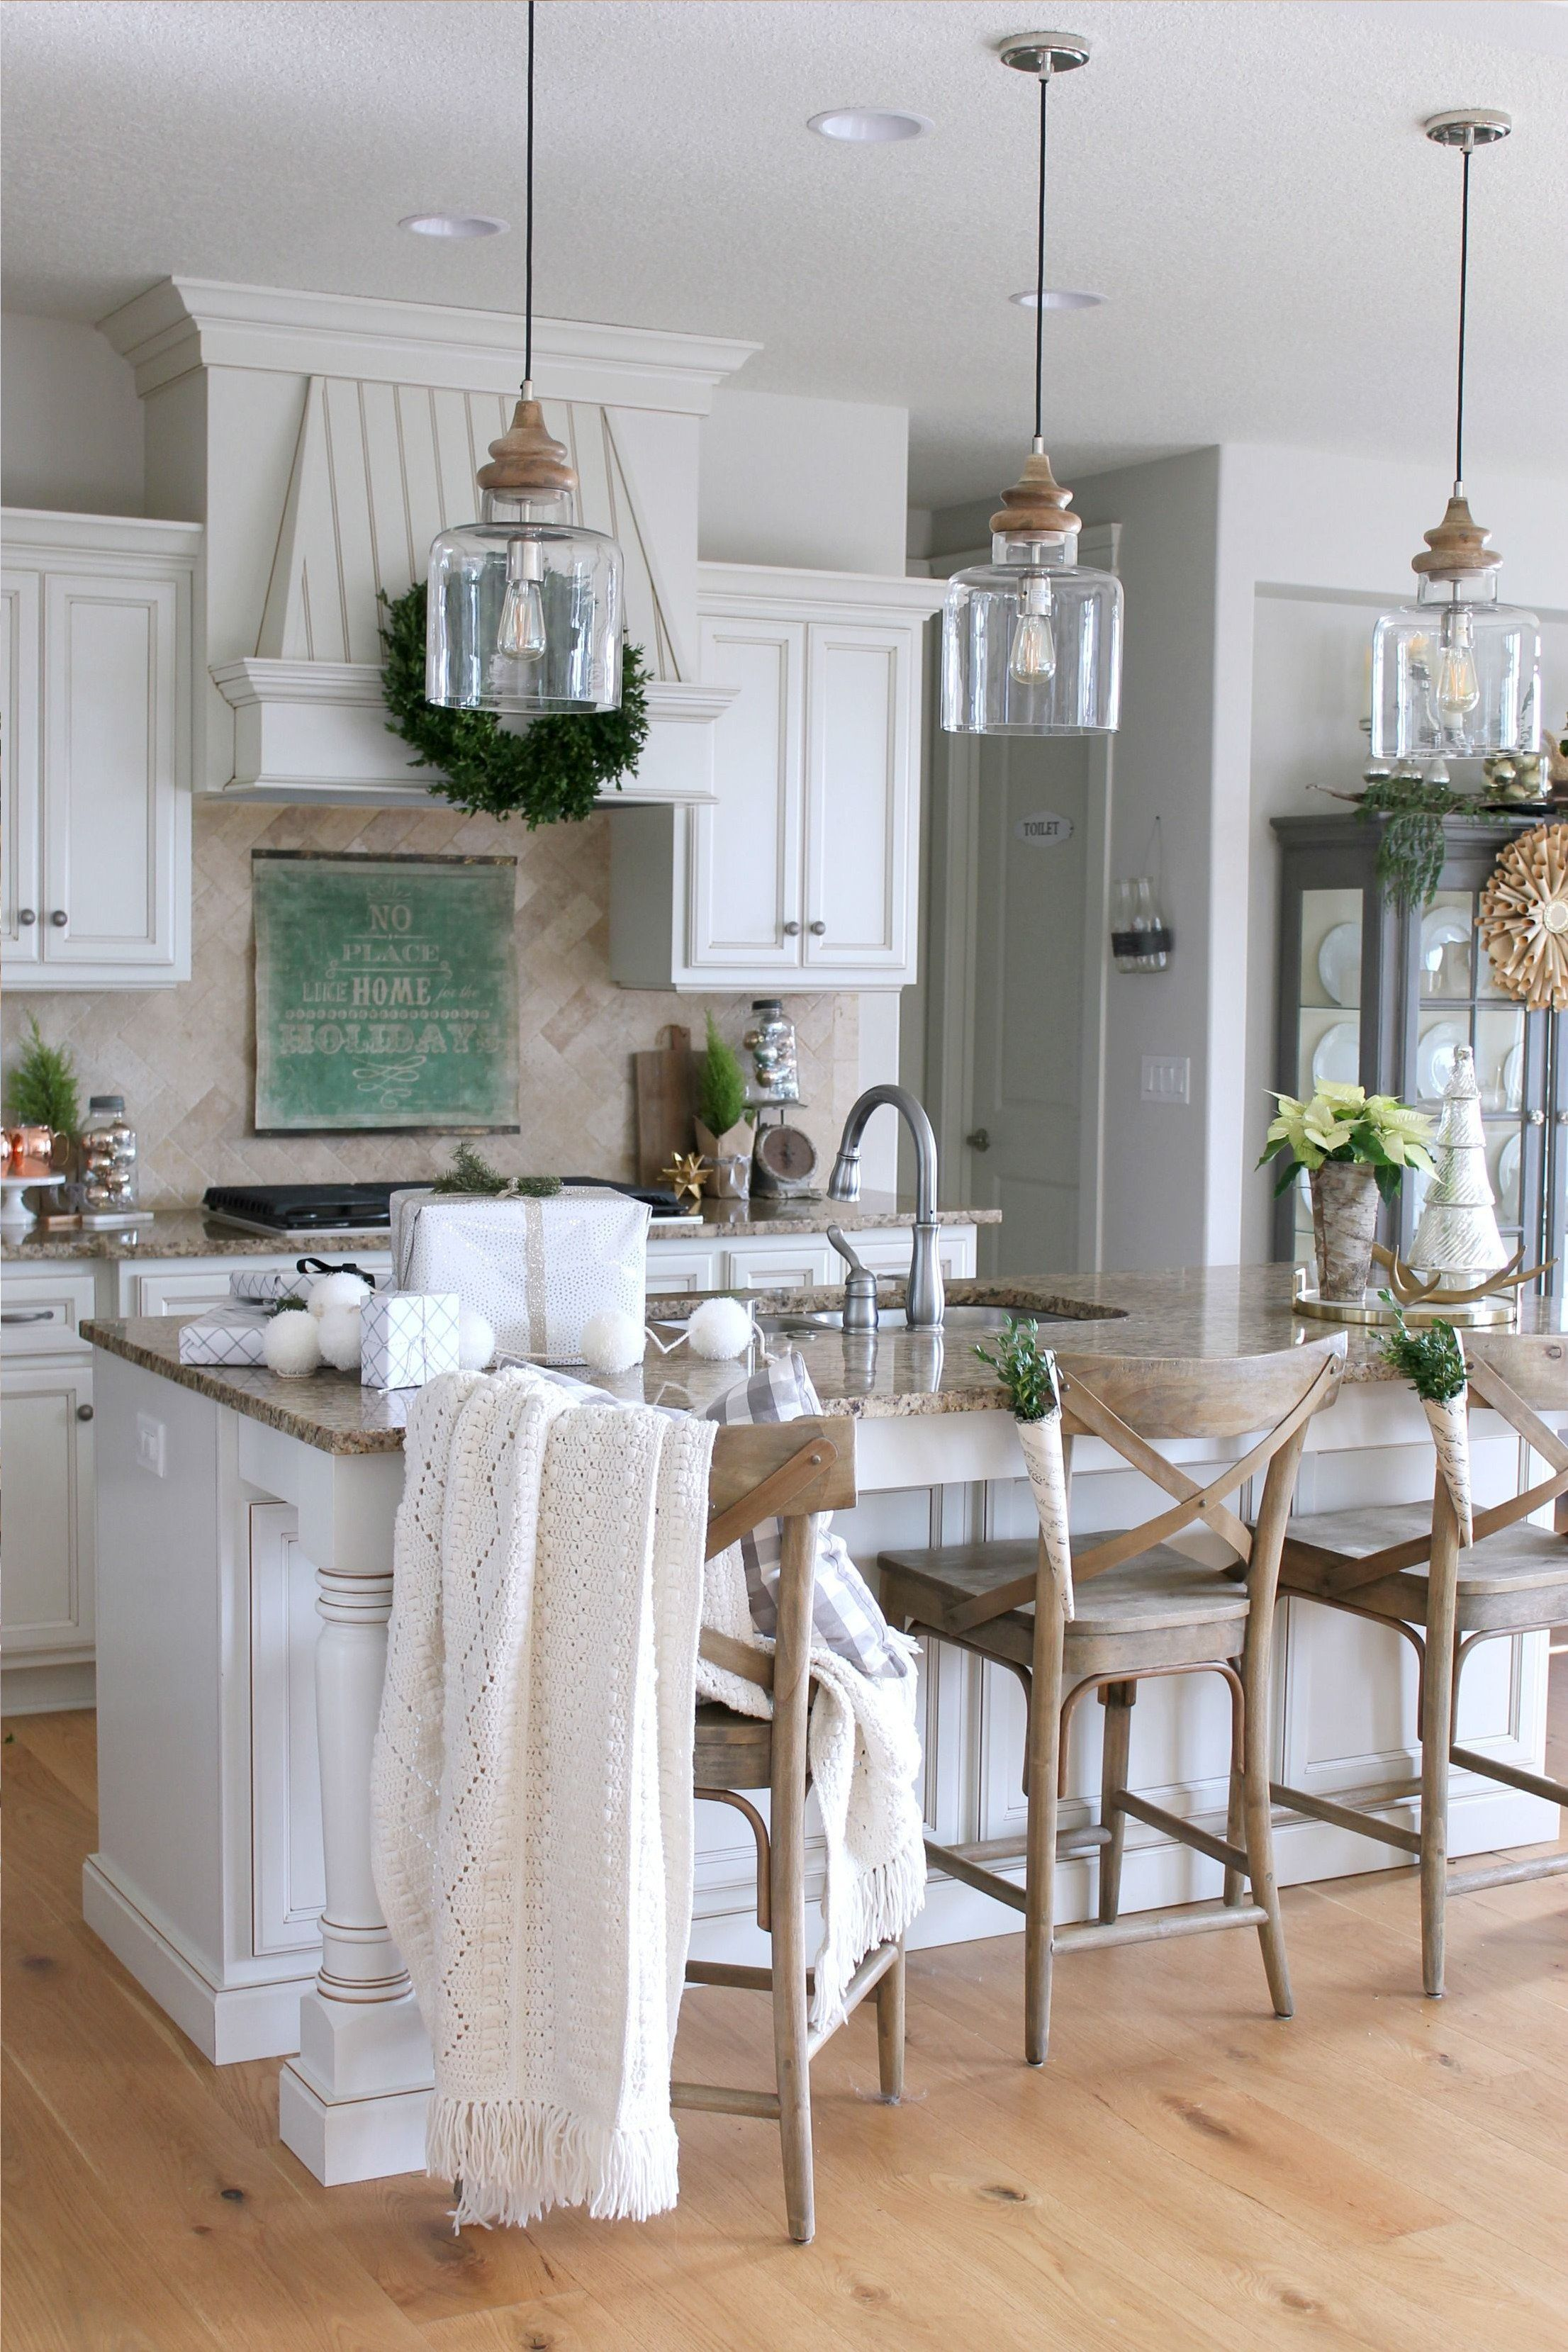 Kitchen Decor. In need of a secret to revive your home kitchen